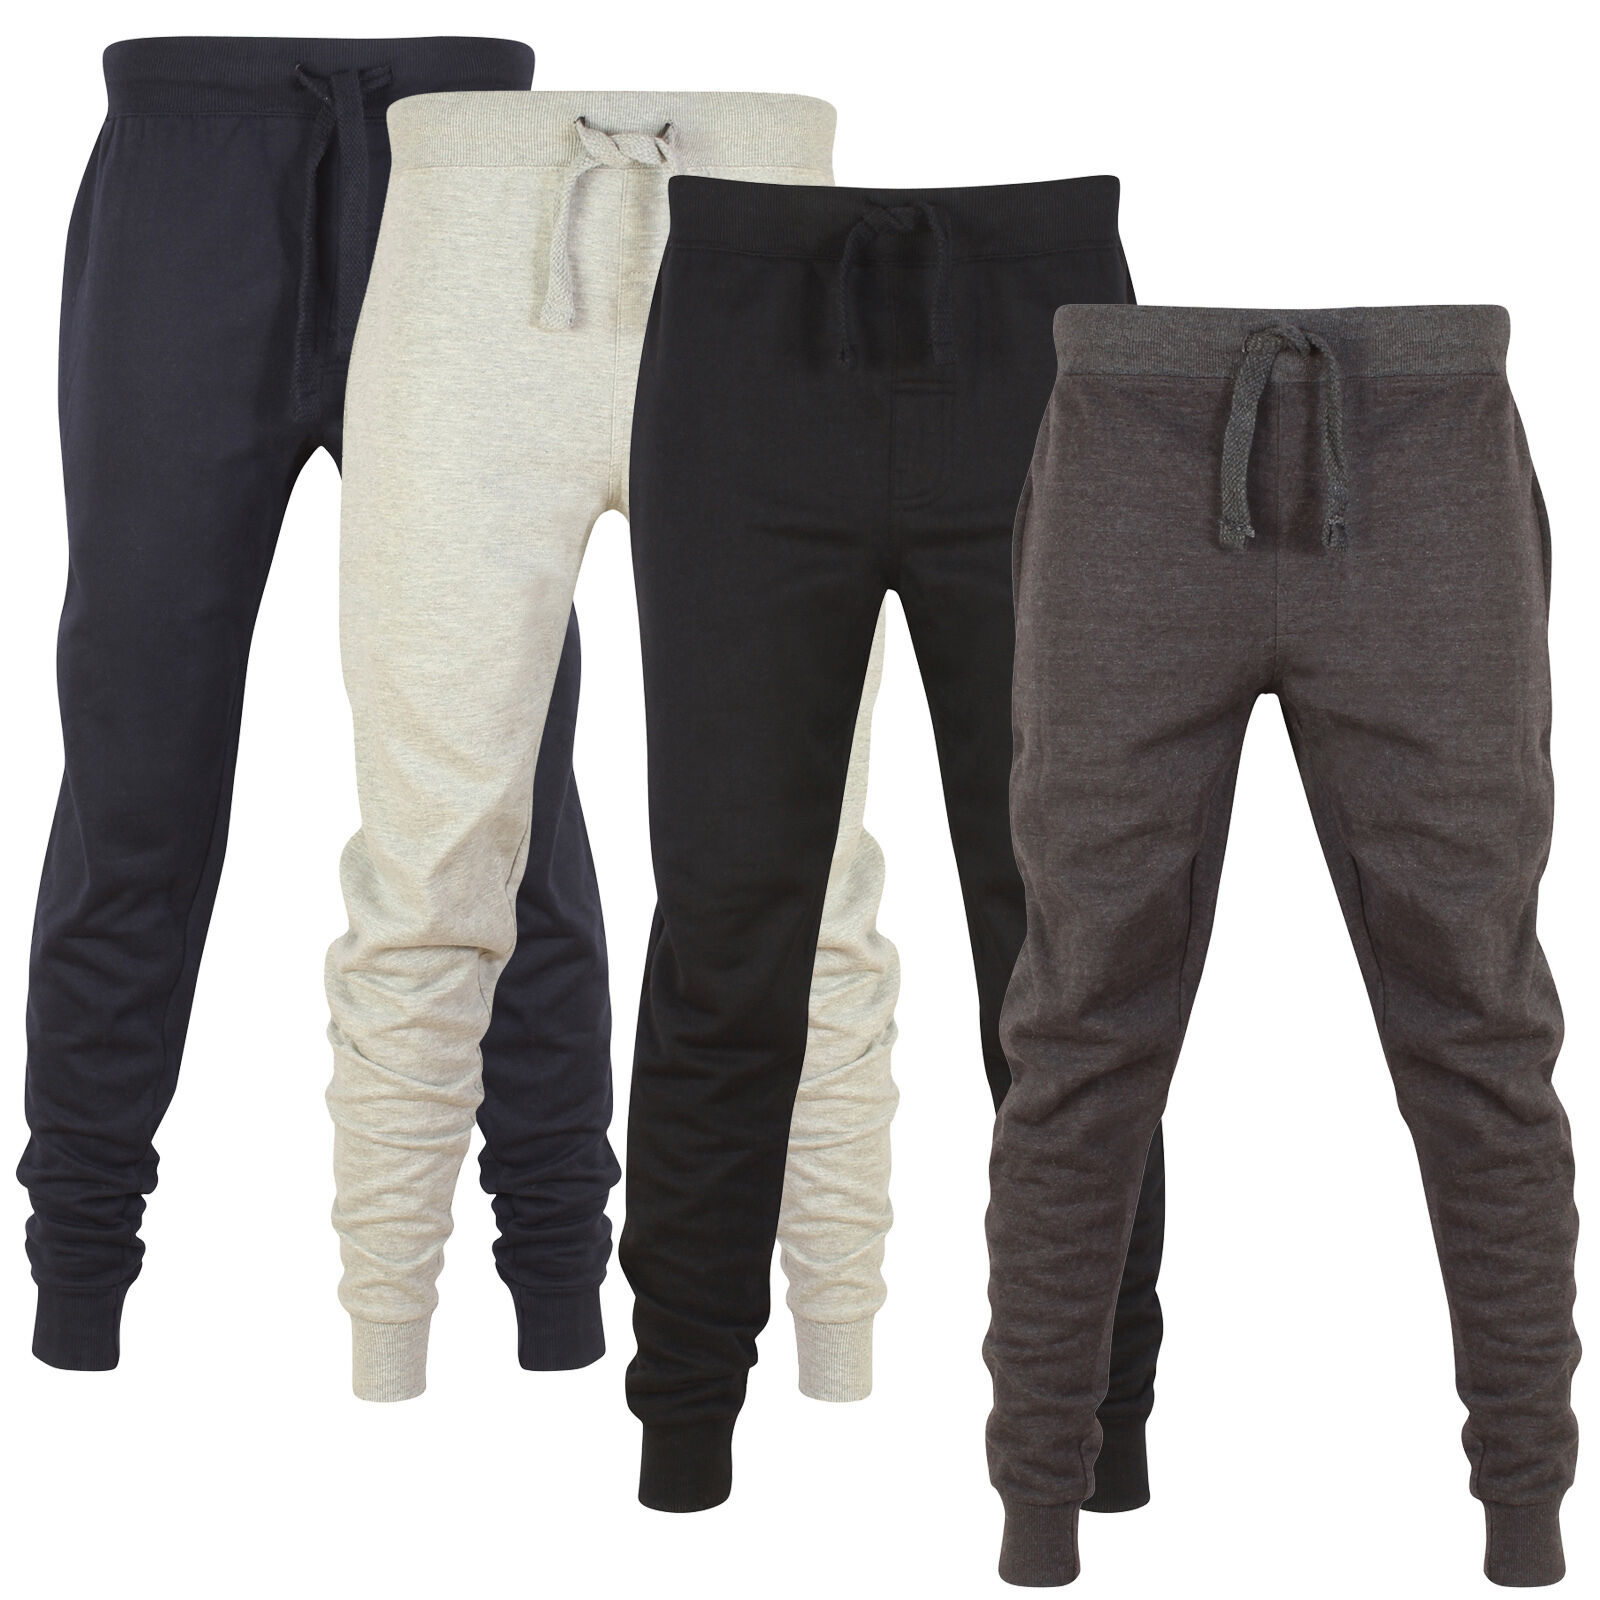 skinny sweat pants men jogger skinny pants skinny trousers for boys skinny fit joggers women ripped joggers skinny sweatpants sports men's joggers body fit joggers pants polyester biker fitted pants Download: Available on the App Store Available on Android.